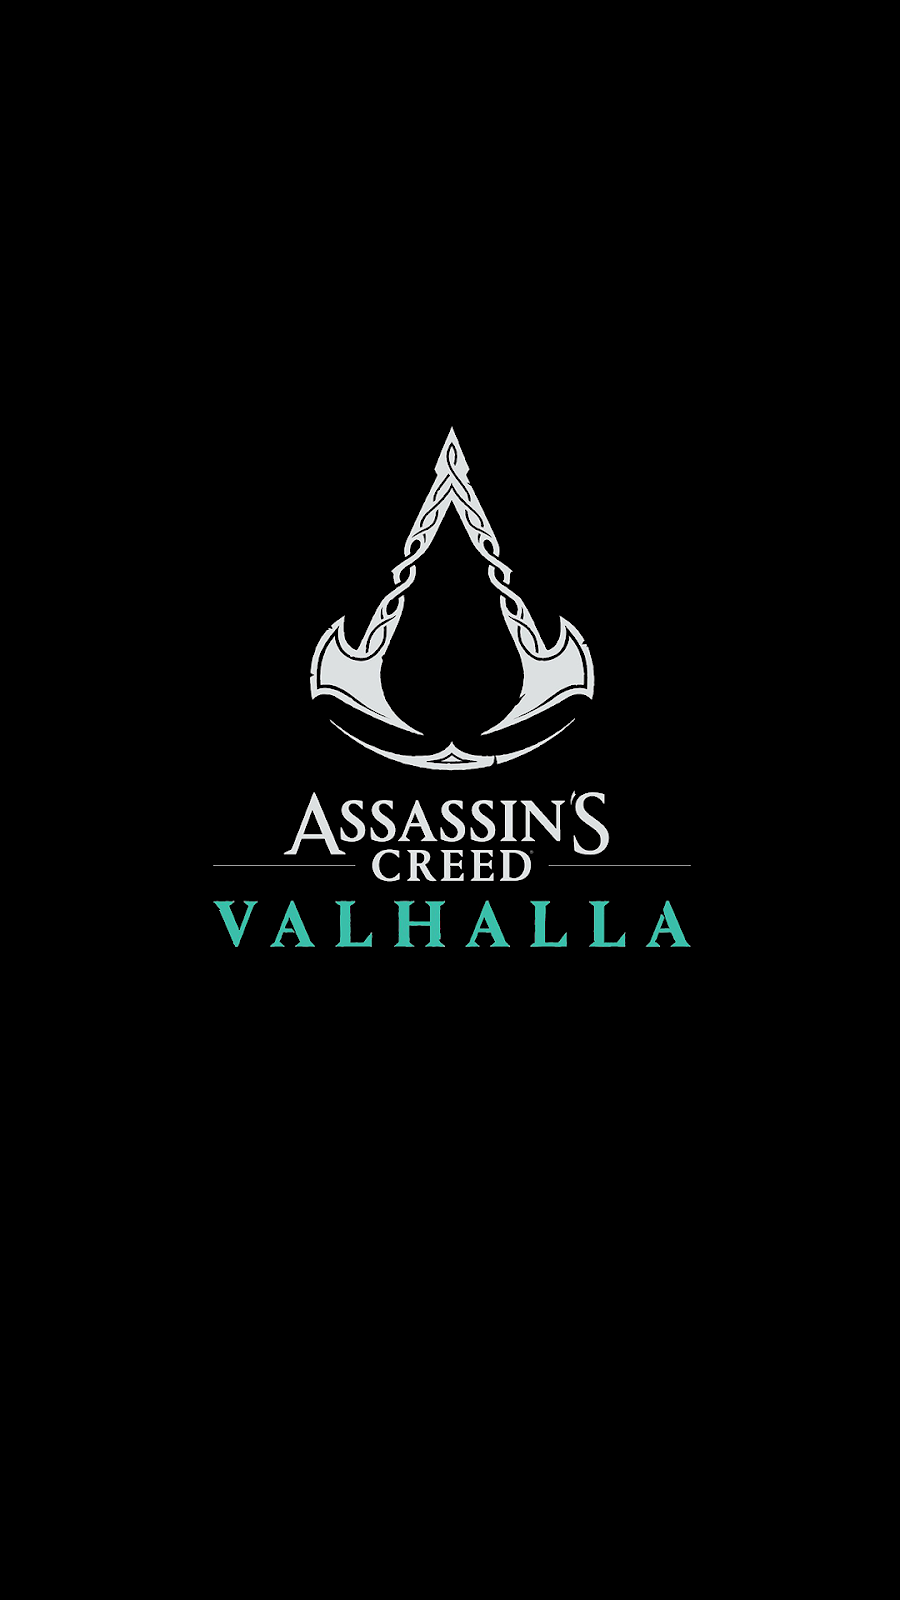 Assassin S Creed Valhalla In 2020 Assassins Creed Assassin S